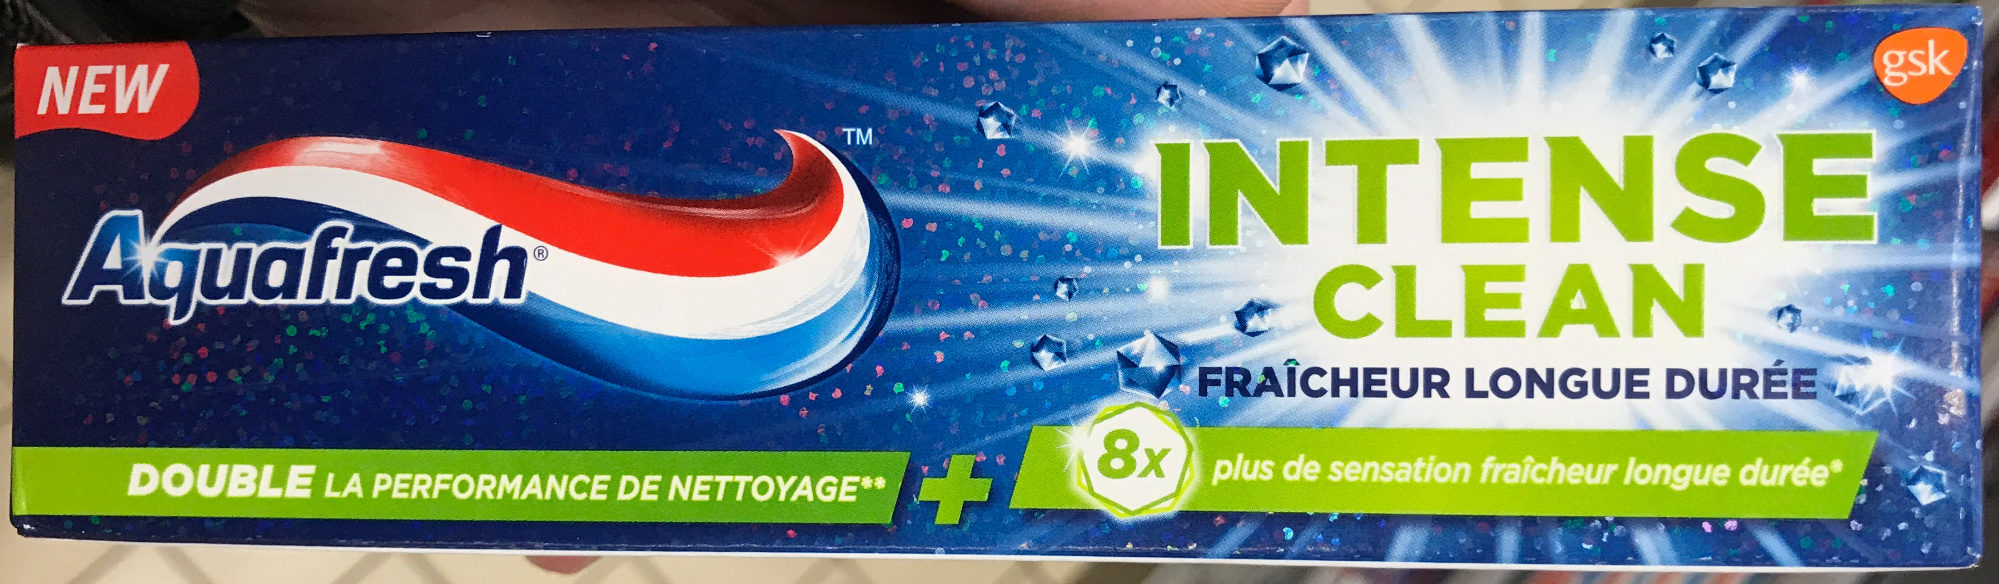 Intense Clean - Produit - fr